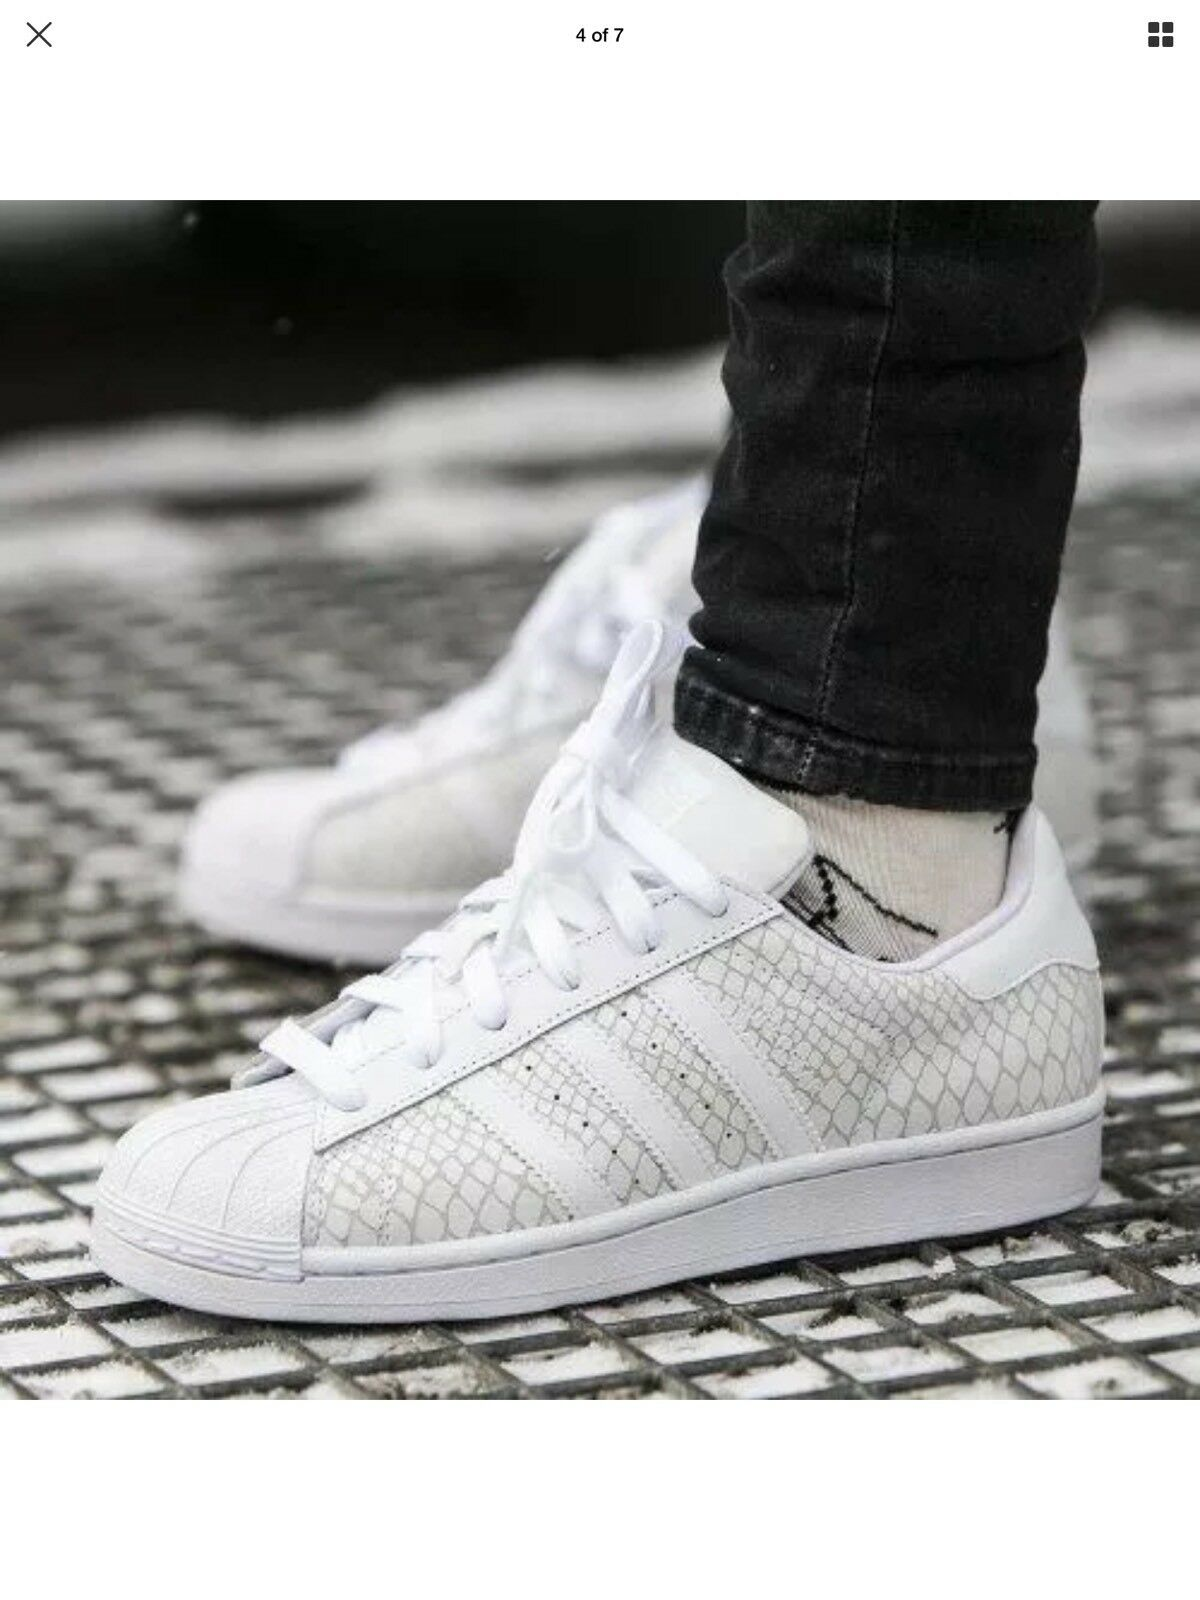 new style c6c6e bcabb ... ADIDAS ADIDAS ADIDAS SUPERSTAR S75127 ATHLETIC WOMEN S SHOES WHITE  ff4534 ...